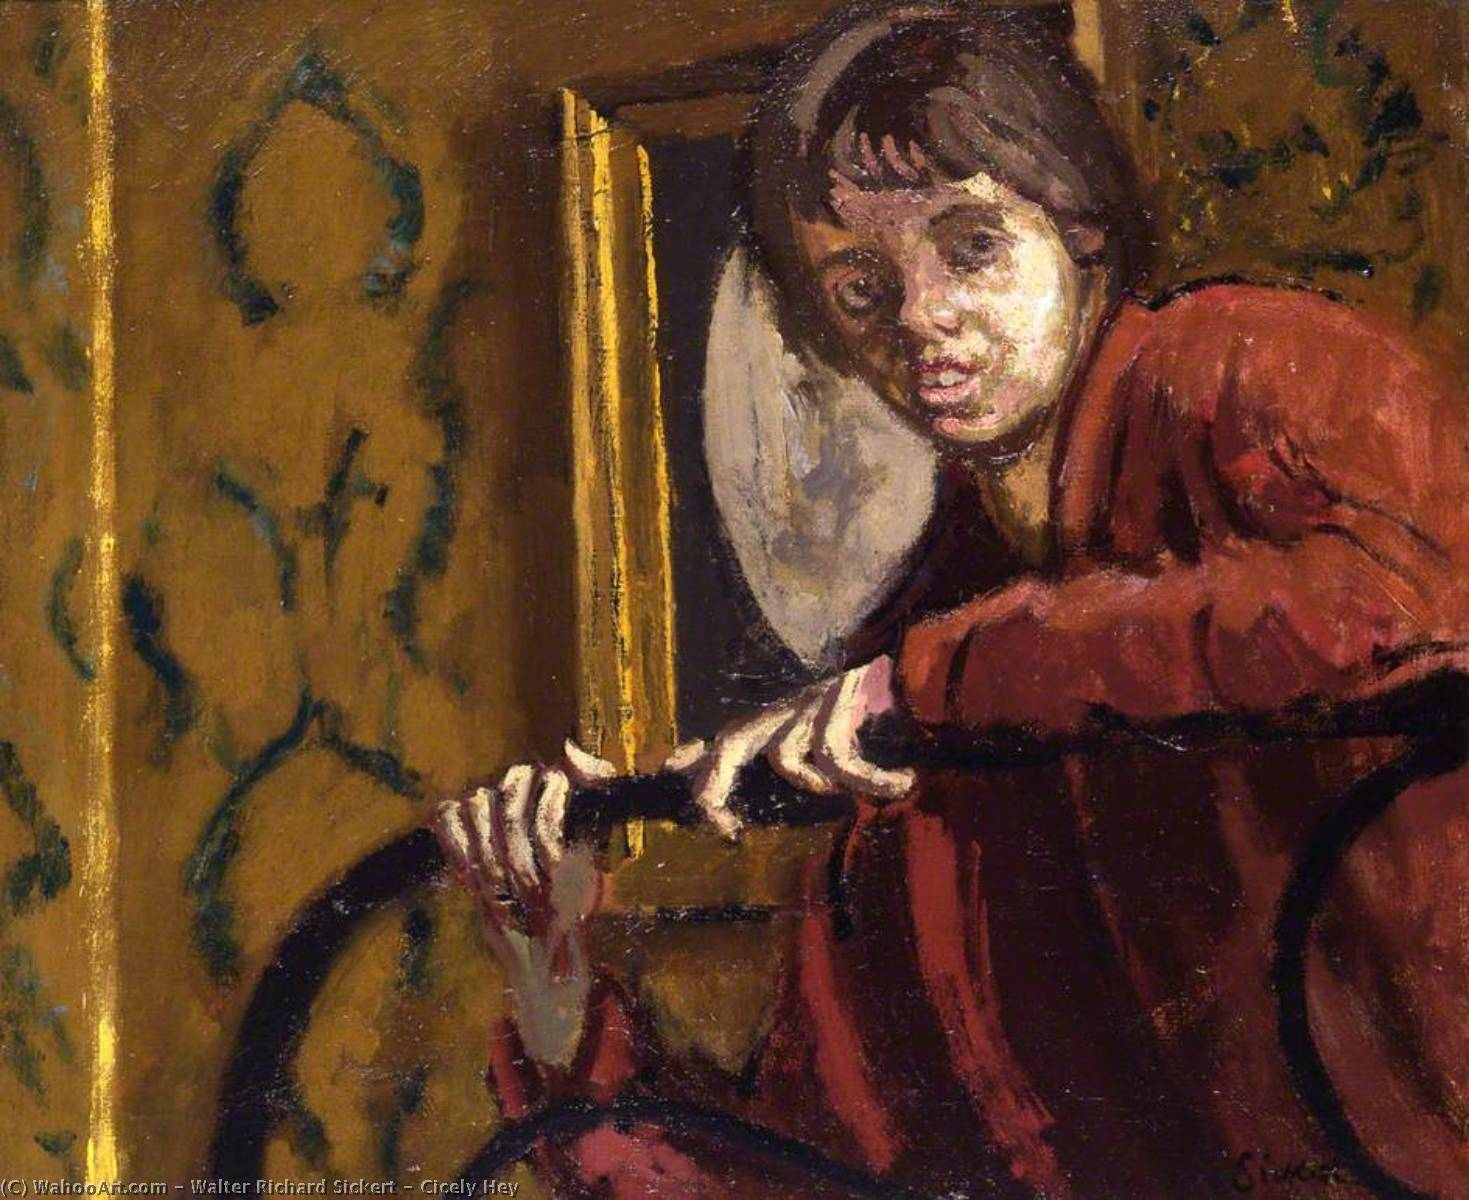 Achat Reproductions D'œuvres D'art Impressionnisme | Cicely Hé de Walter Richard Sickert | TopImpressionists.com